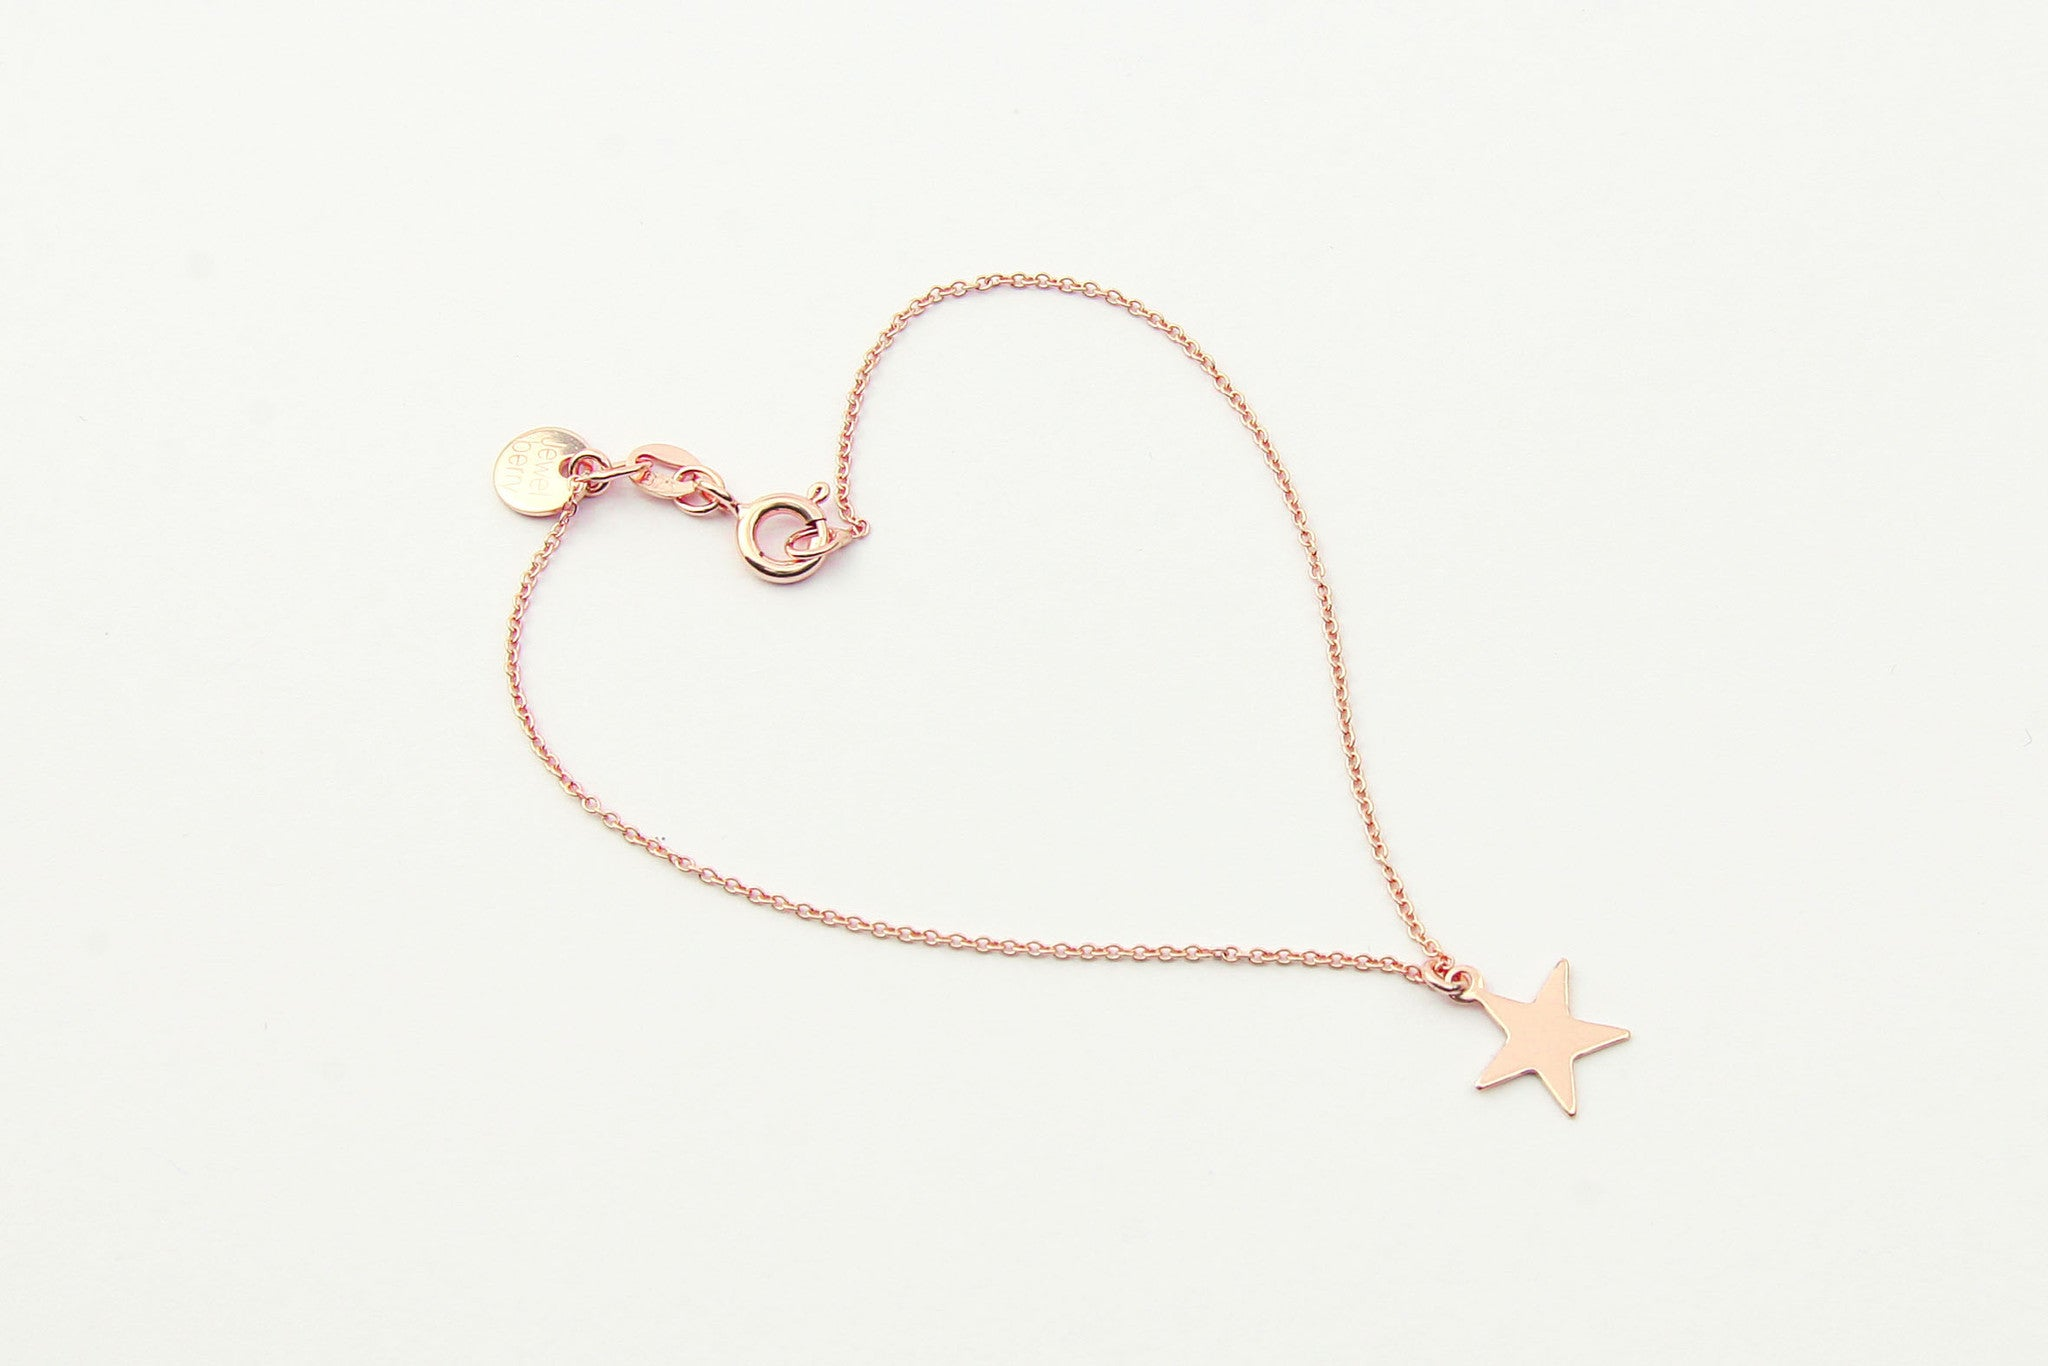 jewelberry armband bracelet plain star rose gold plated sterling silver fine jewelry handmade with love fairtrade anchor chain